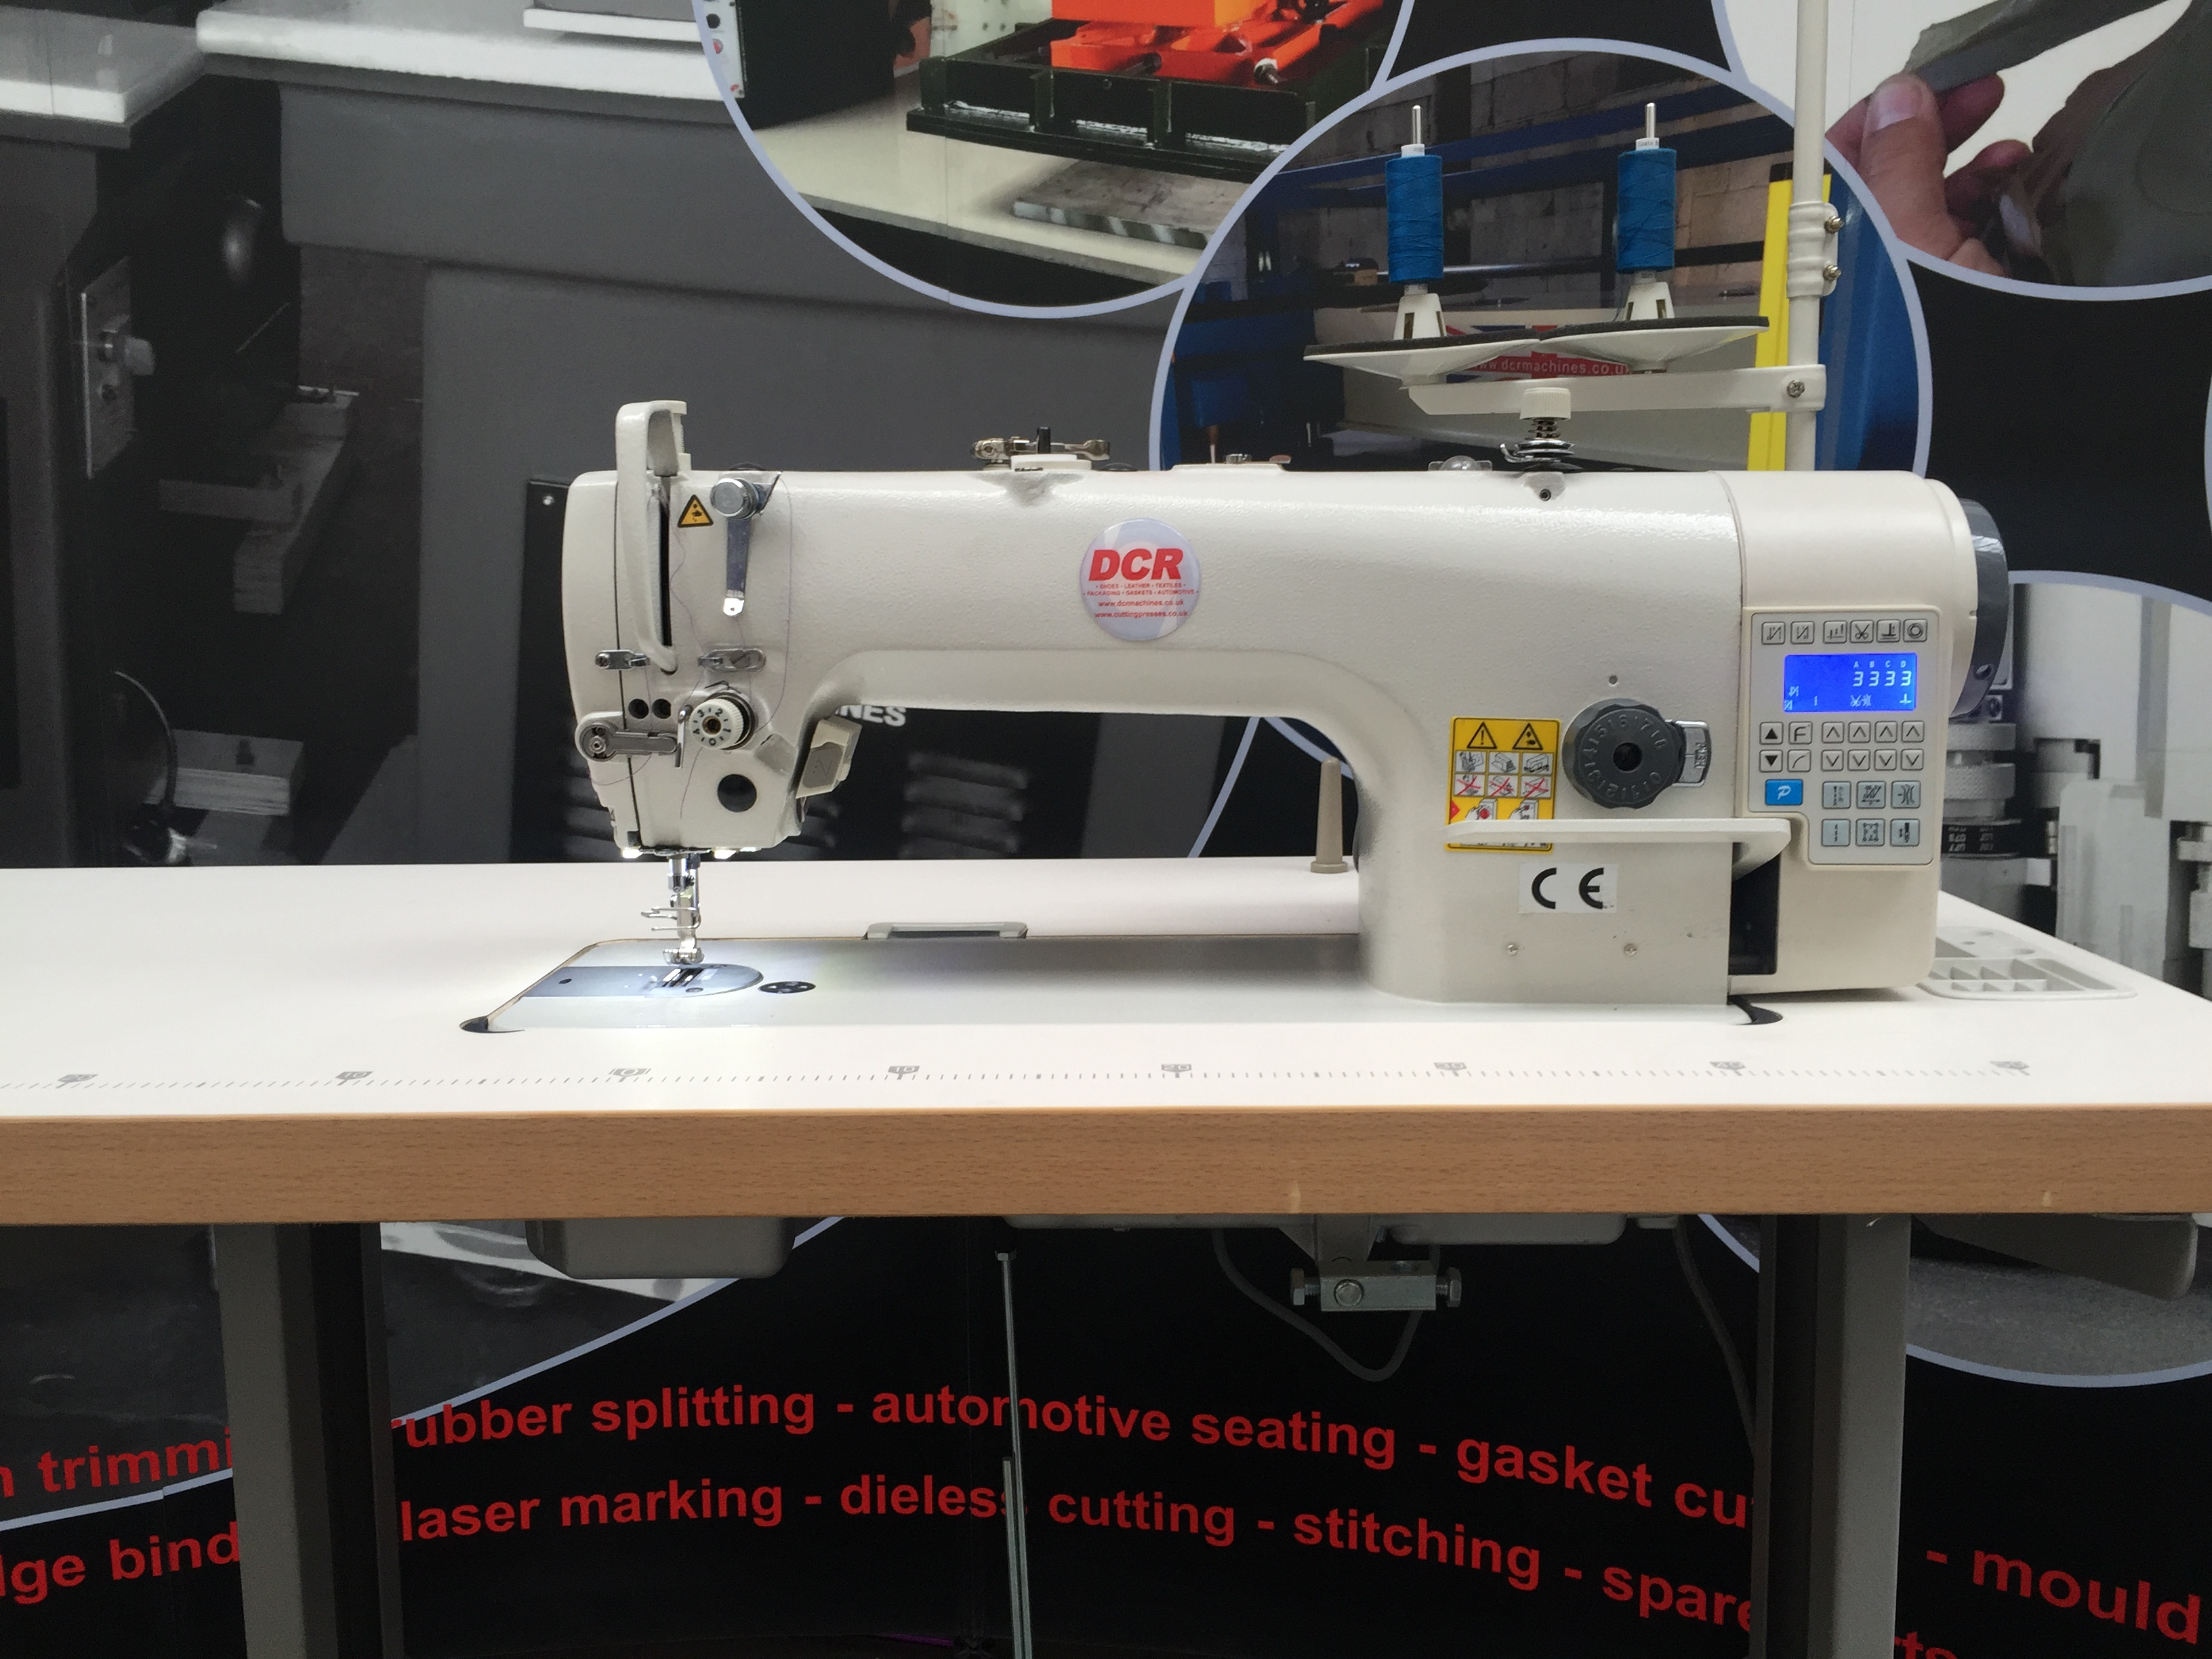 Photo of an DCR NFDD1- Needle Feed Direct Drive Single Needle Industrial Sewing Machines